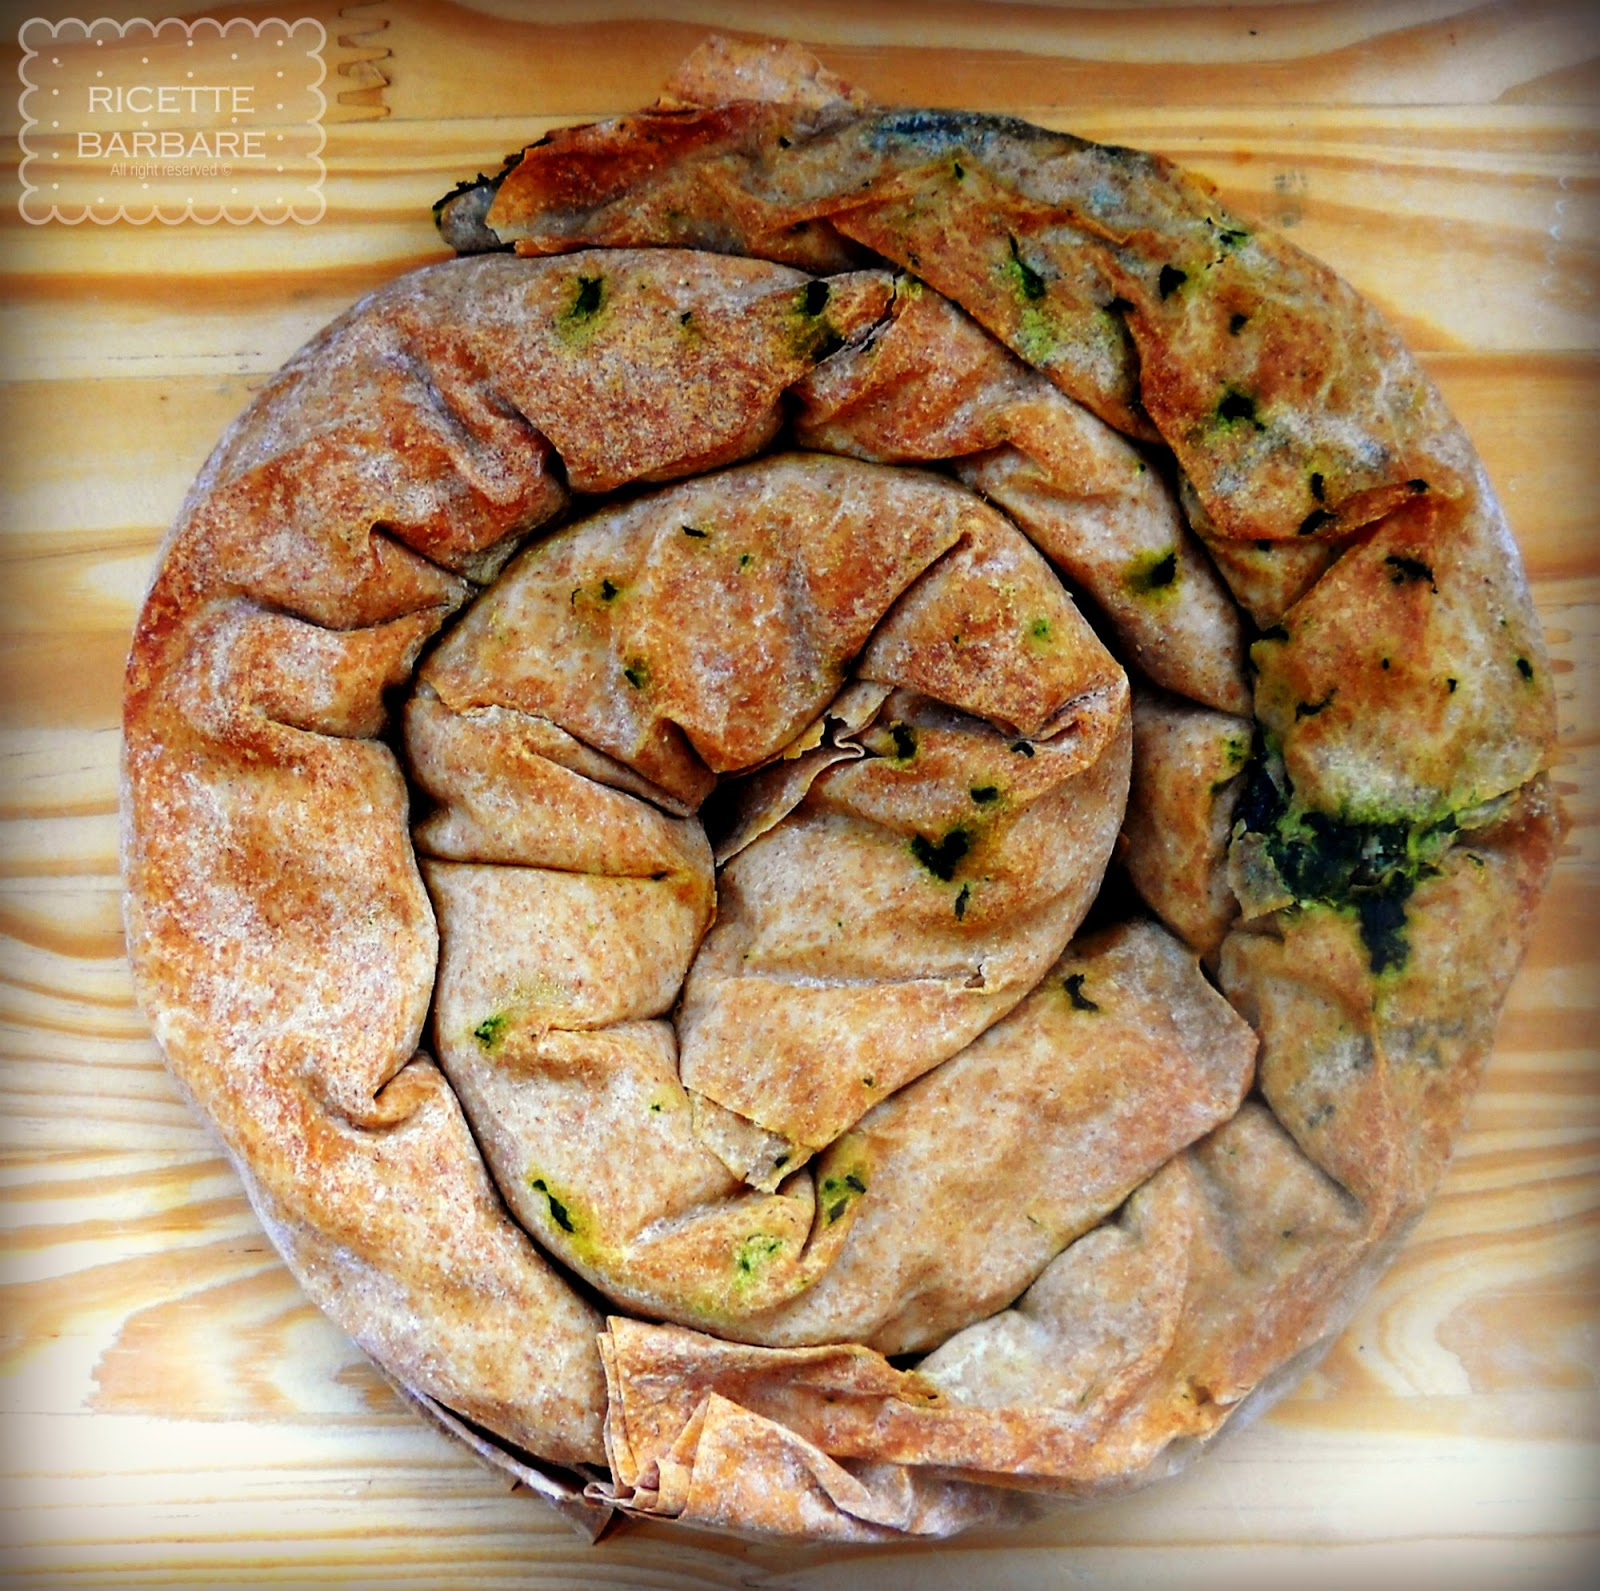 Ricette barbare torta salata di spinaci or easy spinach pie for Cucinare spinaci